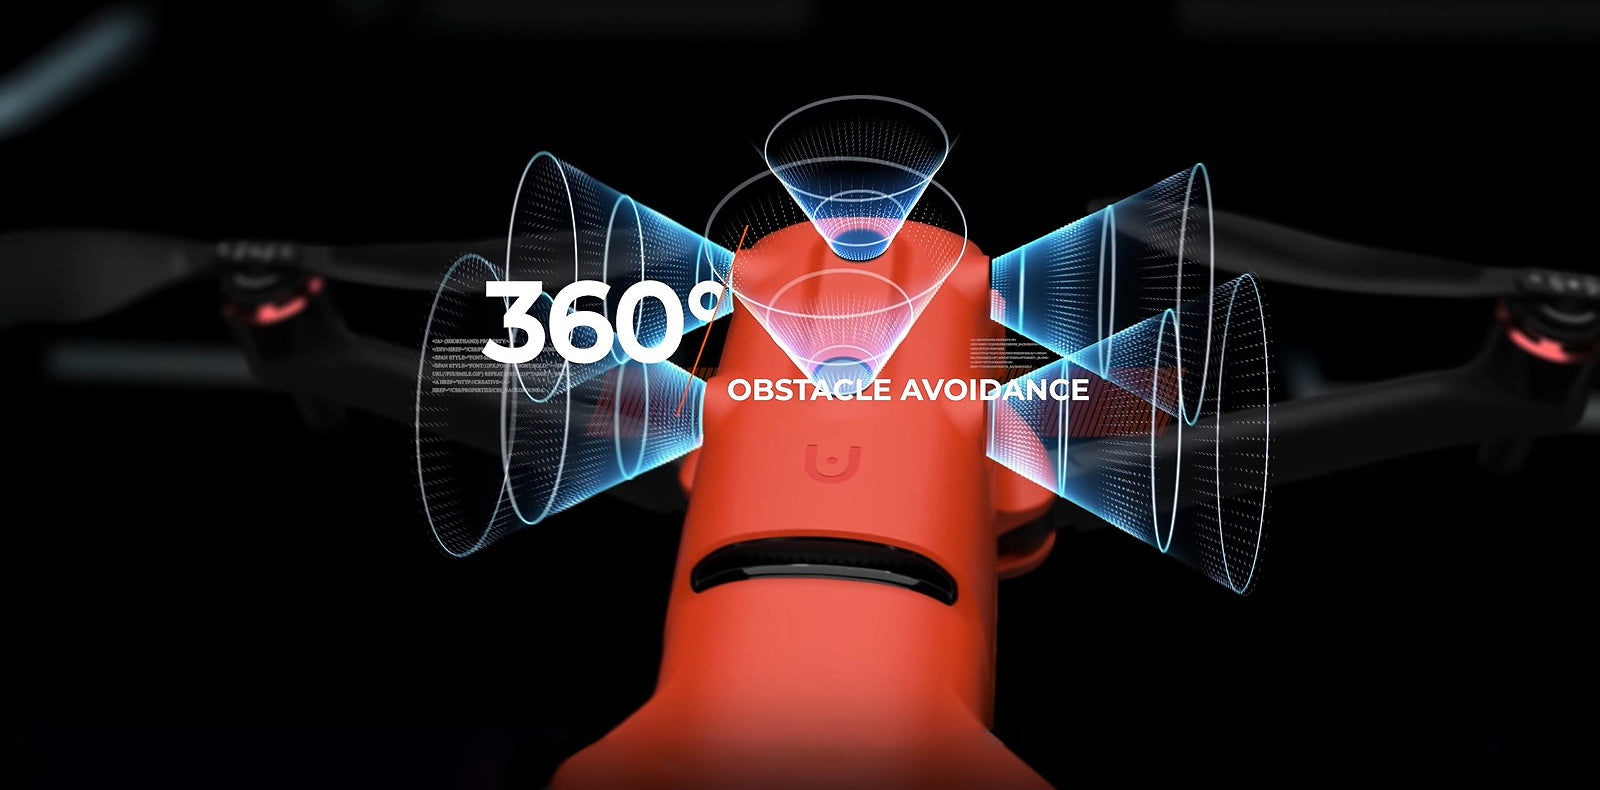 picture of autel evo 2 360° Obstacle Avoidance